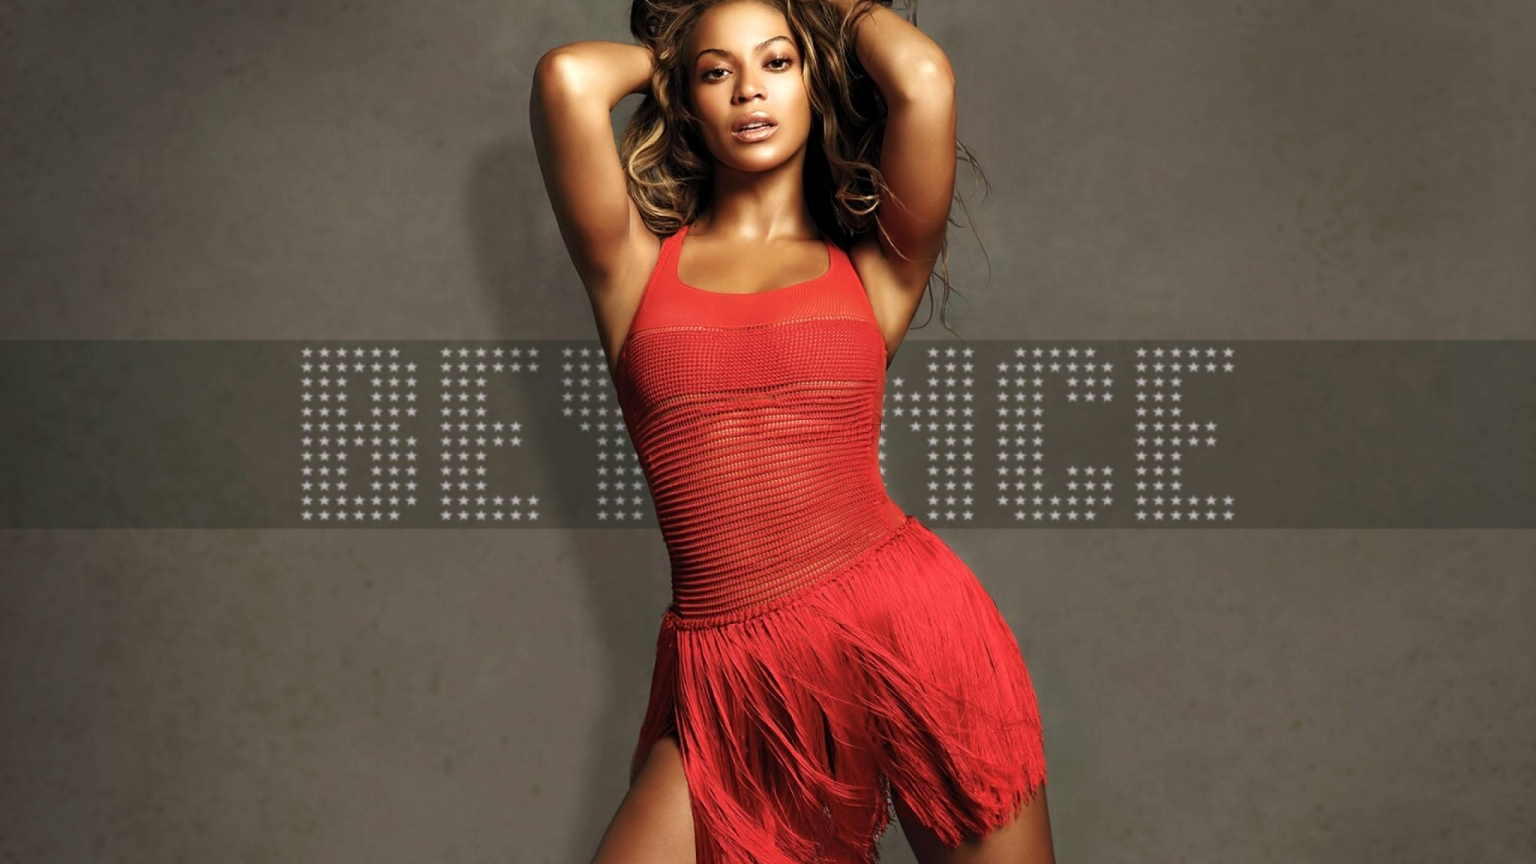 Beautiful Beyonce for 1536 x 864 HDTV resolution